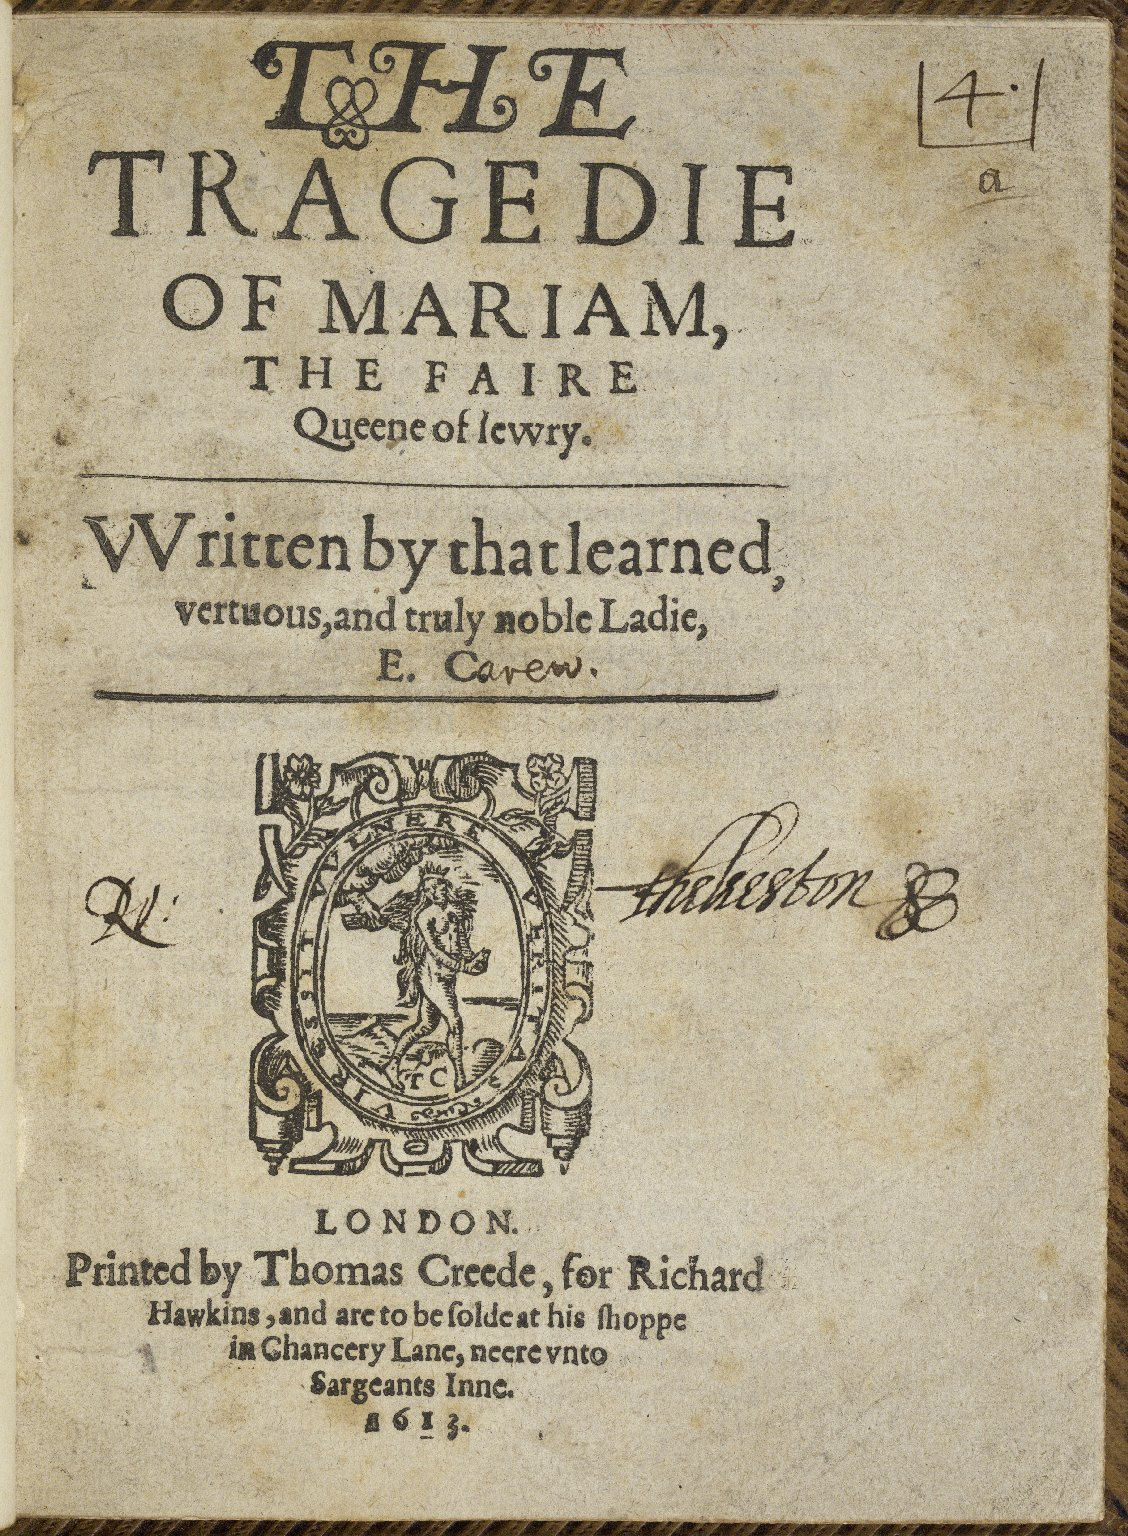 The tragedie of Mariam, the faire queene of Iewry. VVritten by that learned, vertuous, and truly noble ladie, E.C.